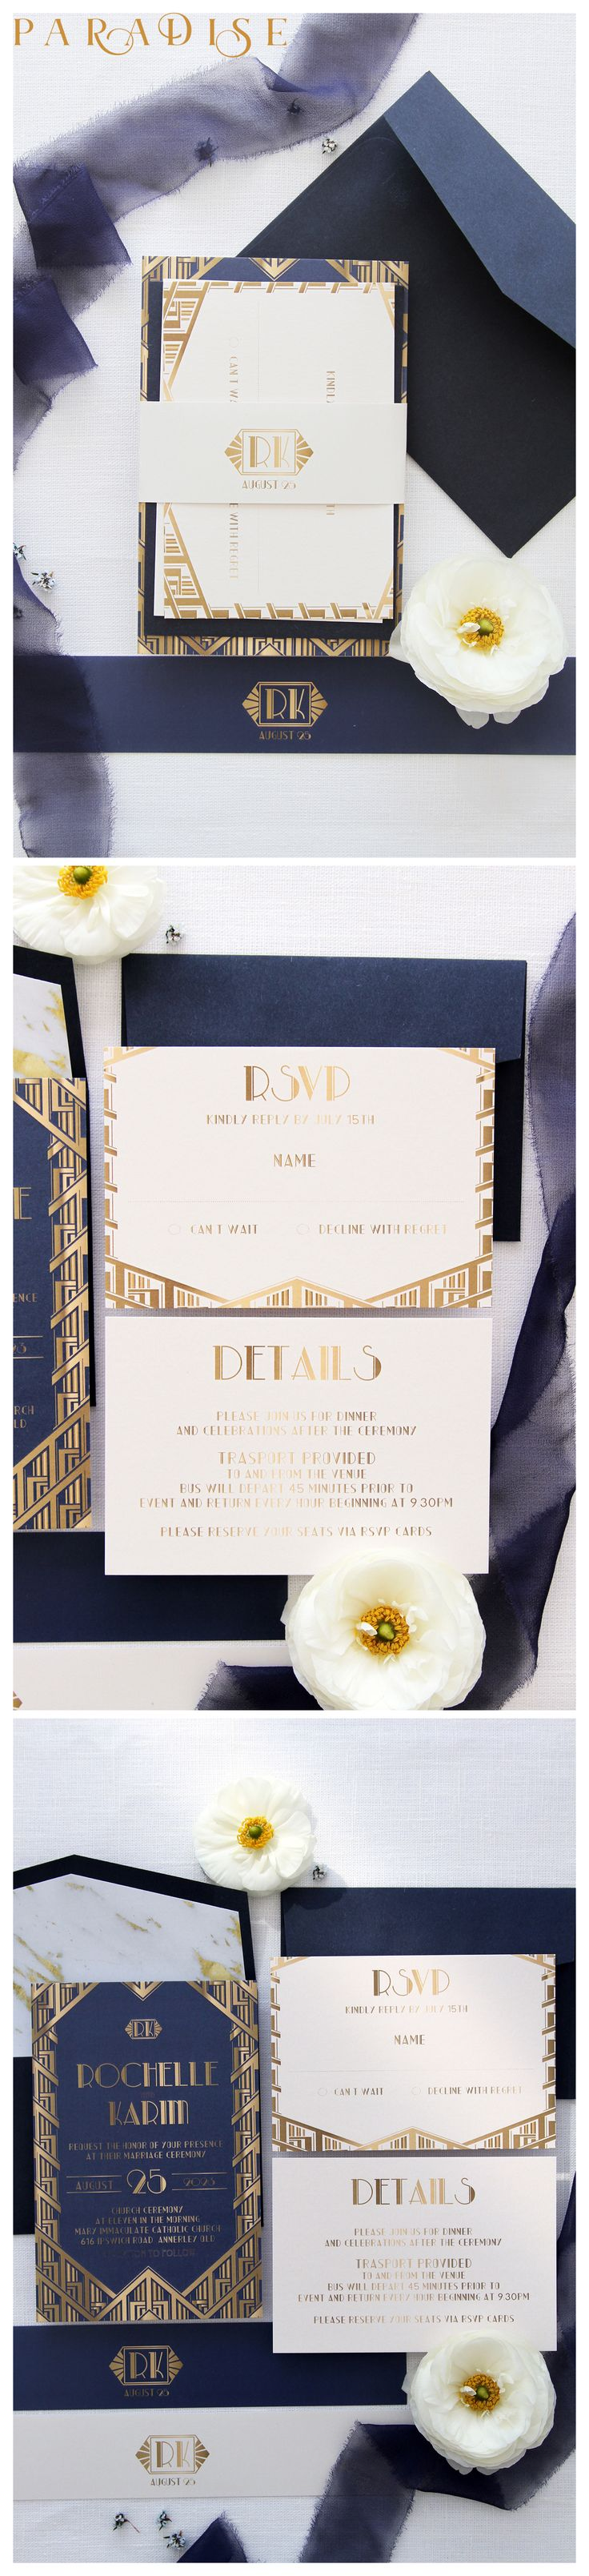 Art Deco Wedding Invitations, Navy and Gold Wedding Invitation Sets, Elegant Invitations, Chic Wedding Invites, Navy Envelopes #weddinginvitation #weddings #bride #weddingstationery #weddinginvitations #weddingtrends #weddinginspo #weddingstyle